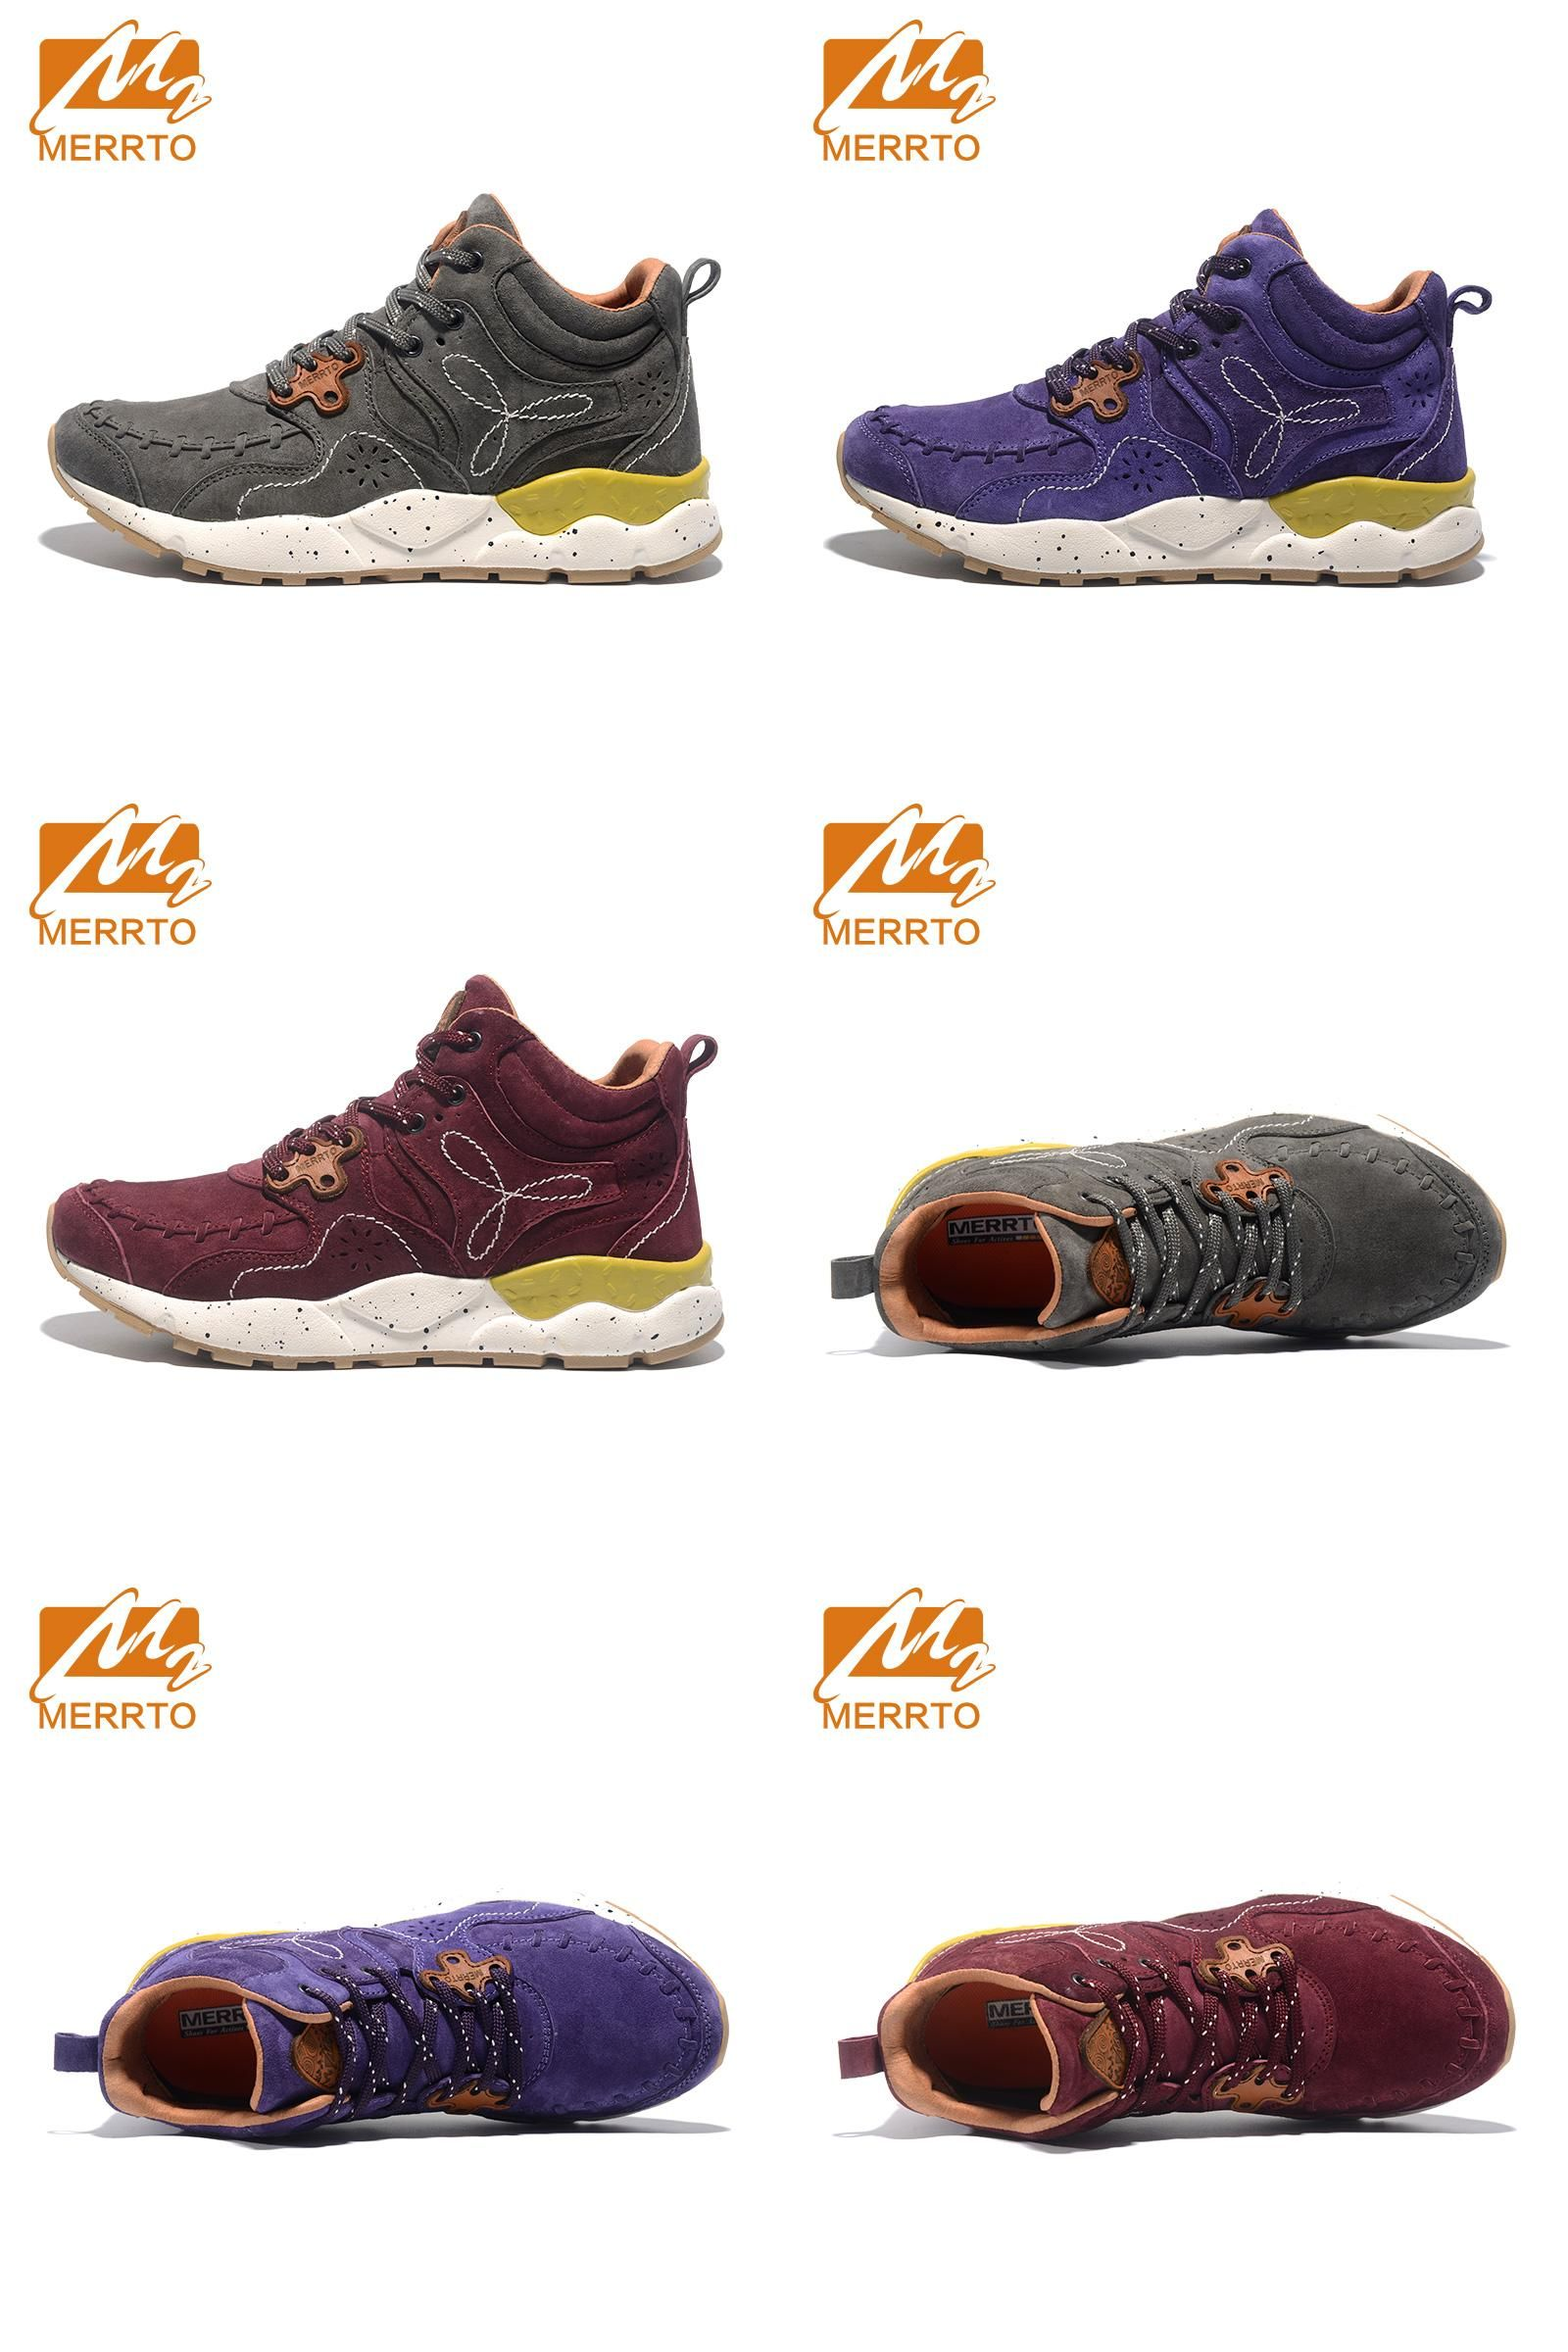 74e11414f6e4  Visit to Buy  MERRTO Breathable Women Walking Shoes Lightweight  Comfortable Brand Trainers Skid-